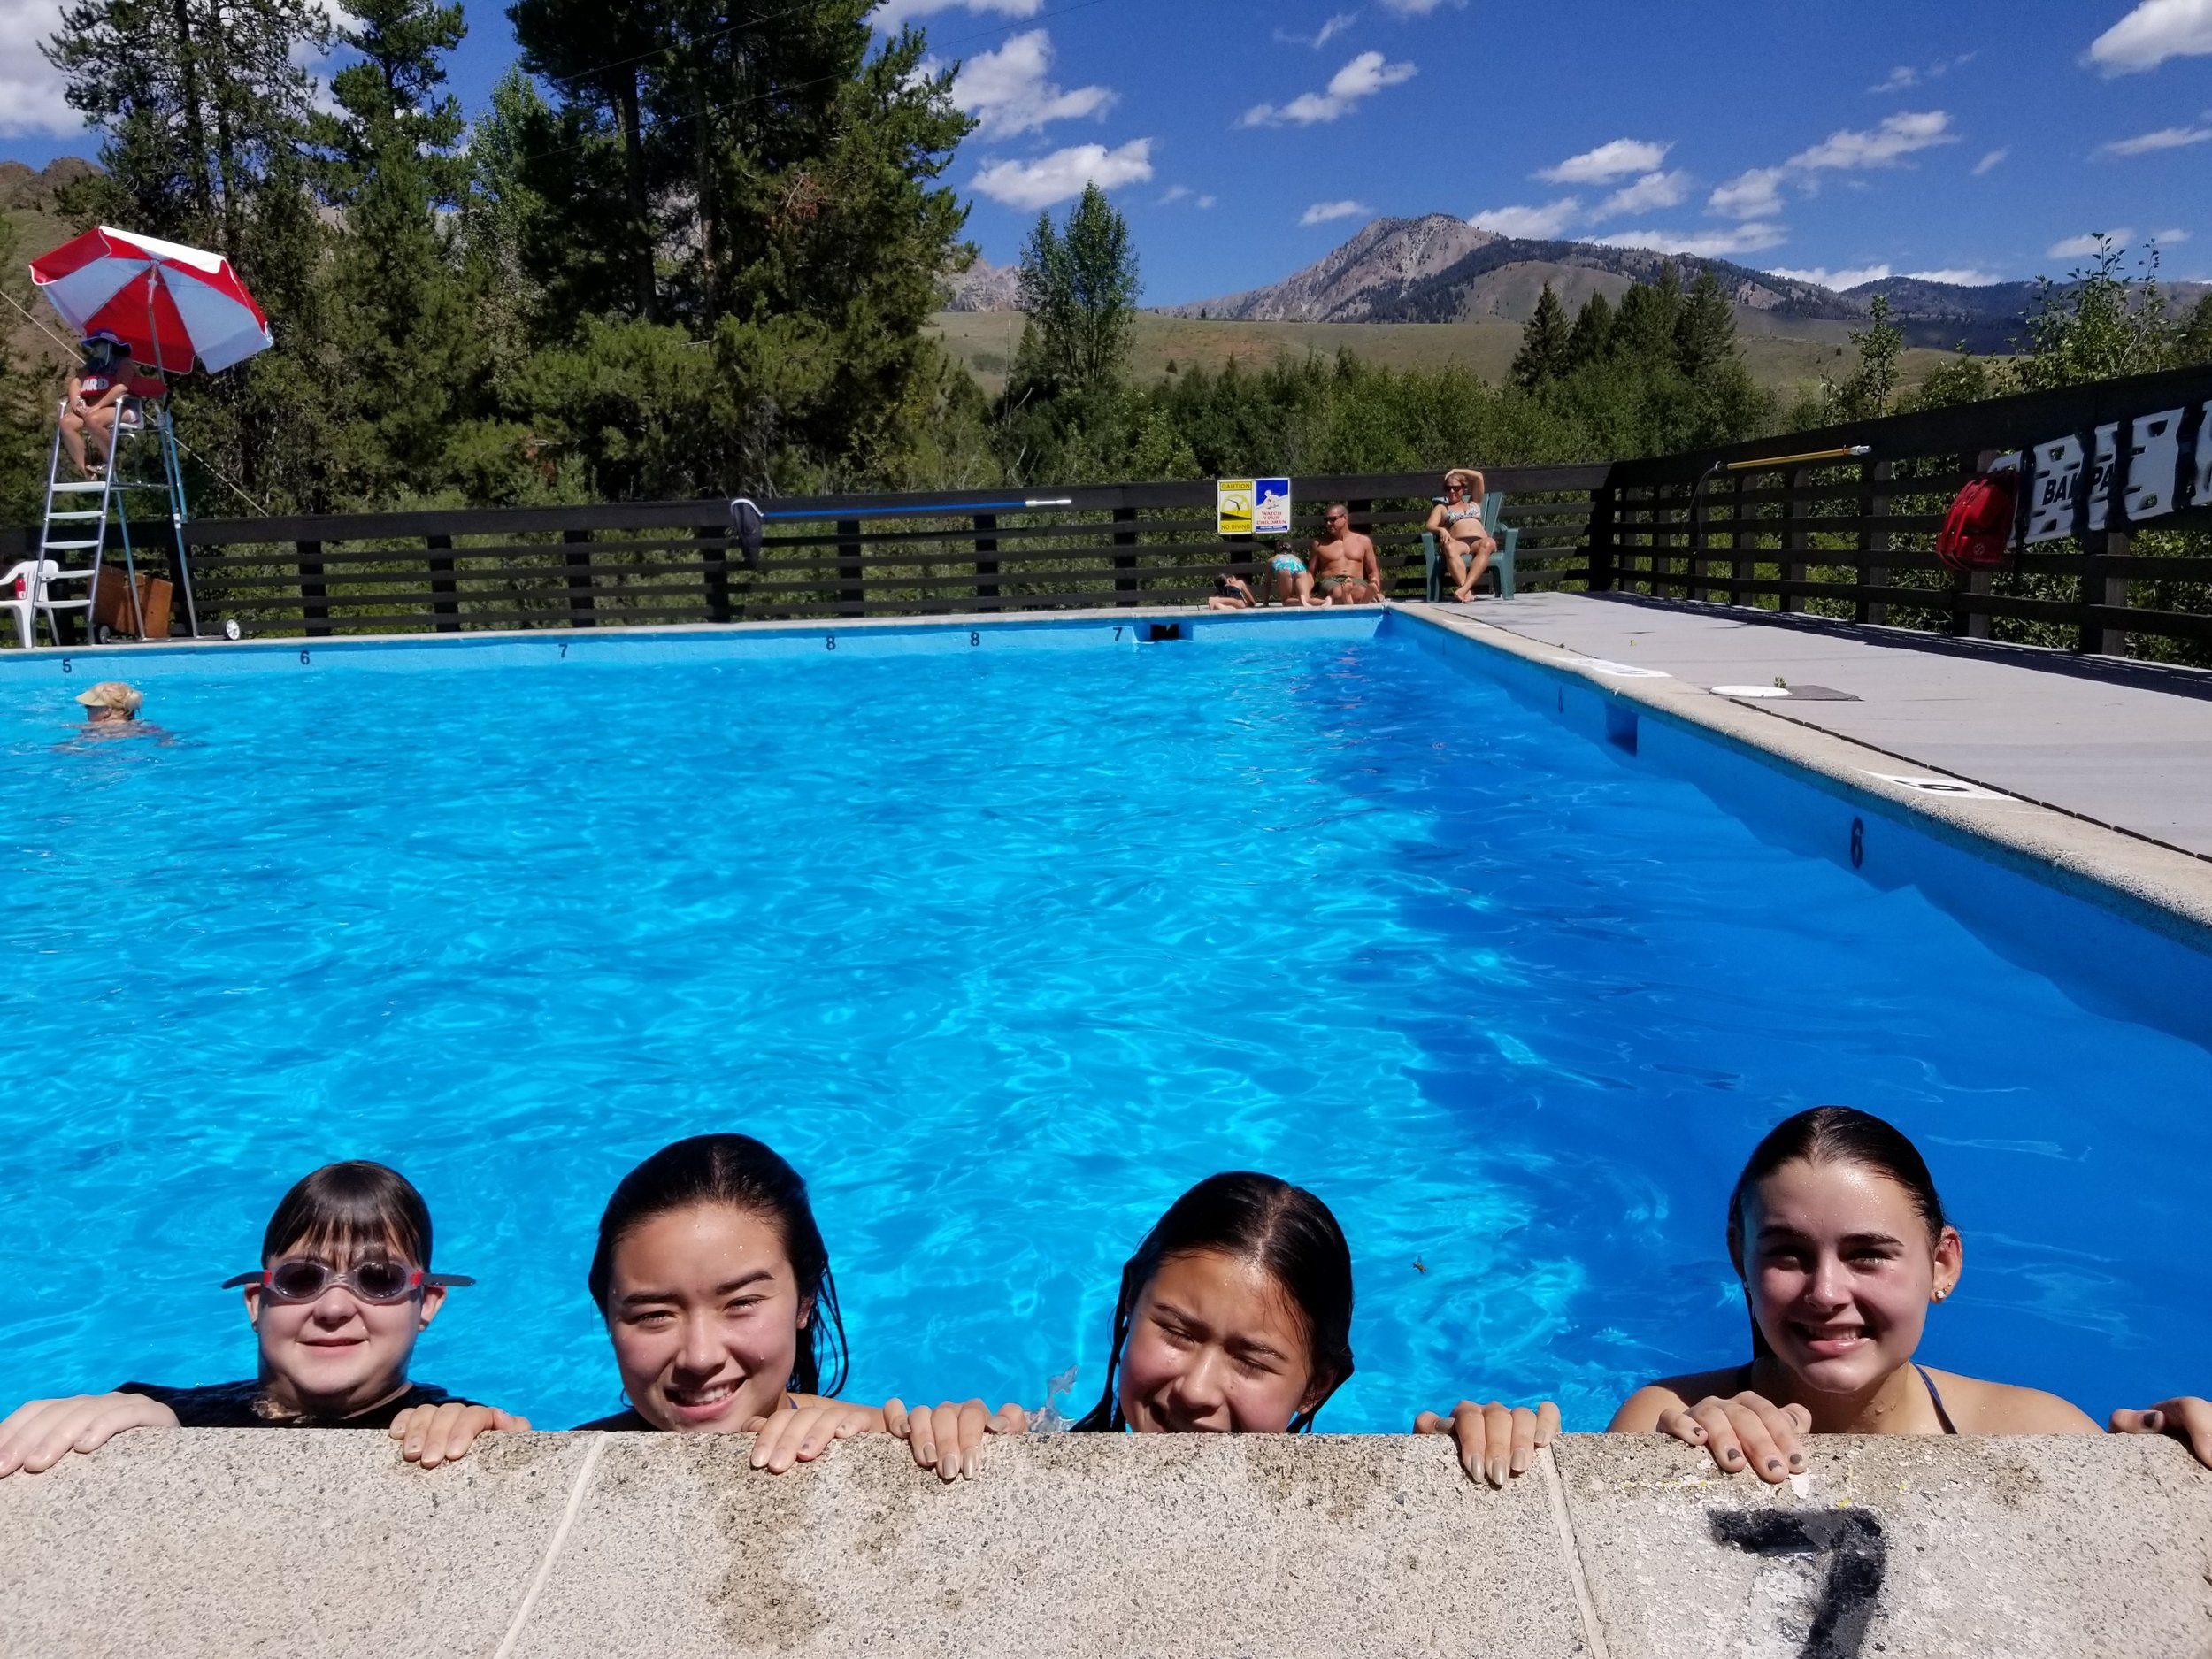 Mason and Zsofi having a soak with their cousins at Easley Hot Springs near Ketchum, Idaho.